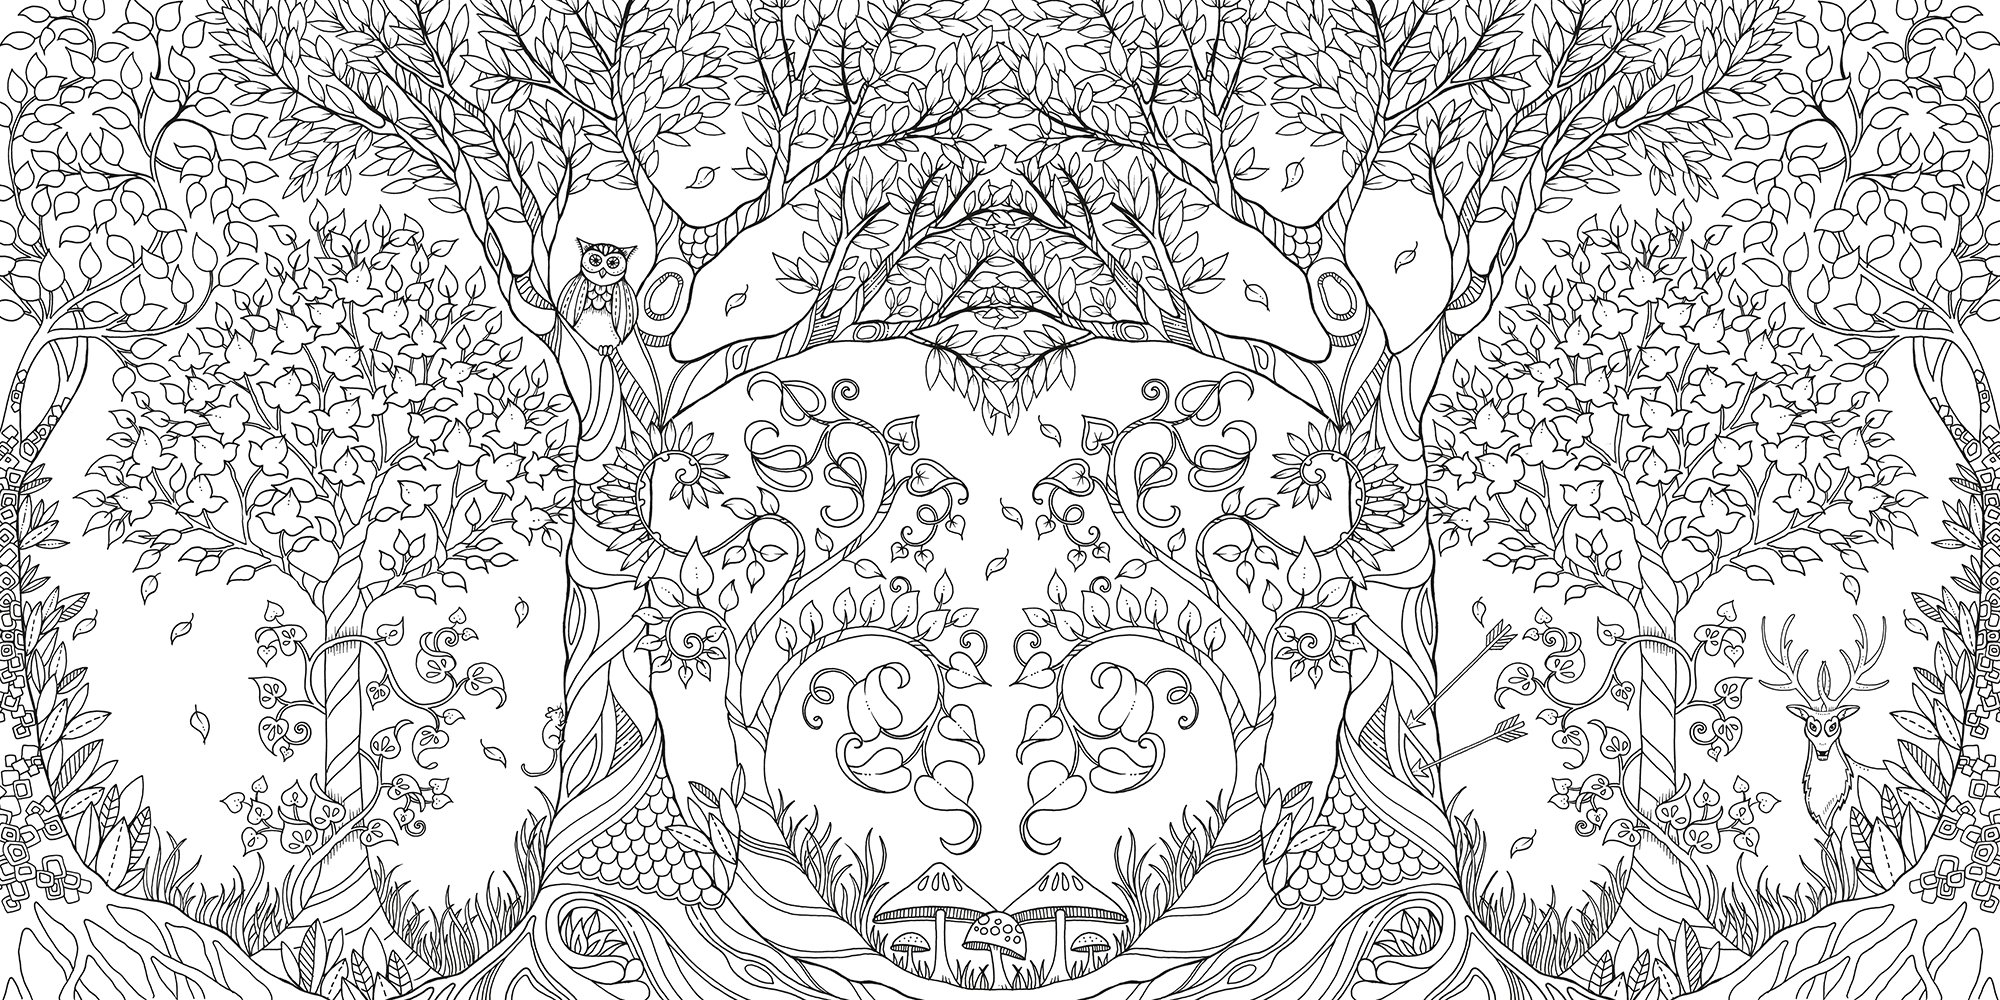 amazoncom enchanted forest an inky quest coloring book 6063887956574 johanna basford books - Coulering Book